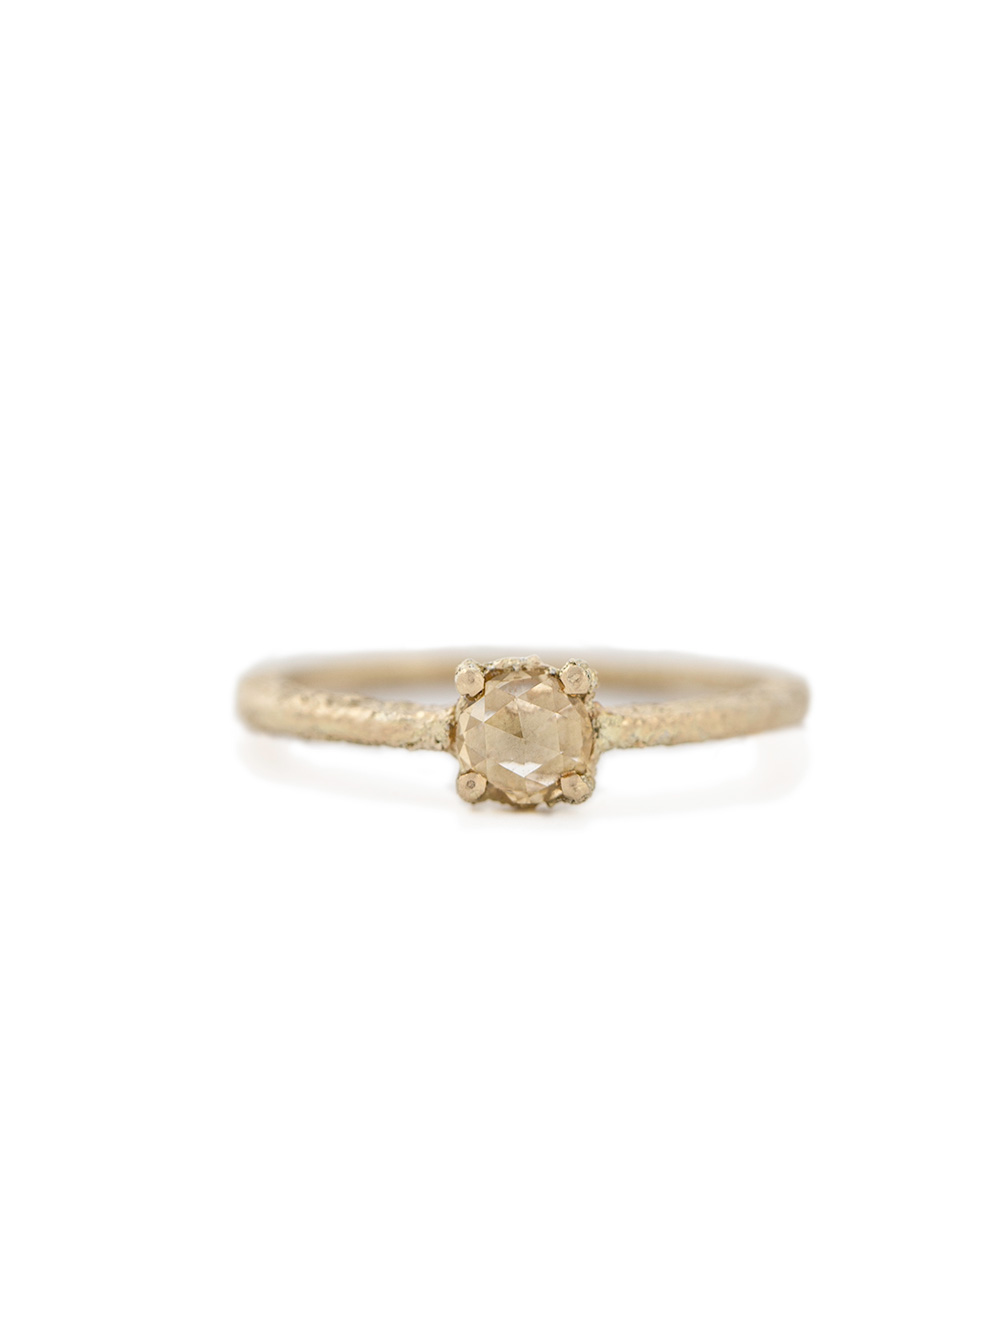 Rose cut yellow diamond ring in yellow gold